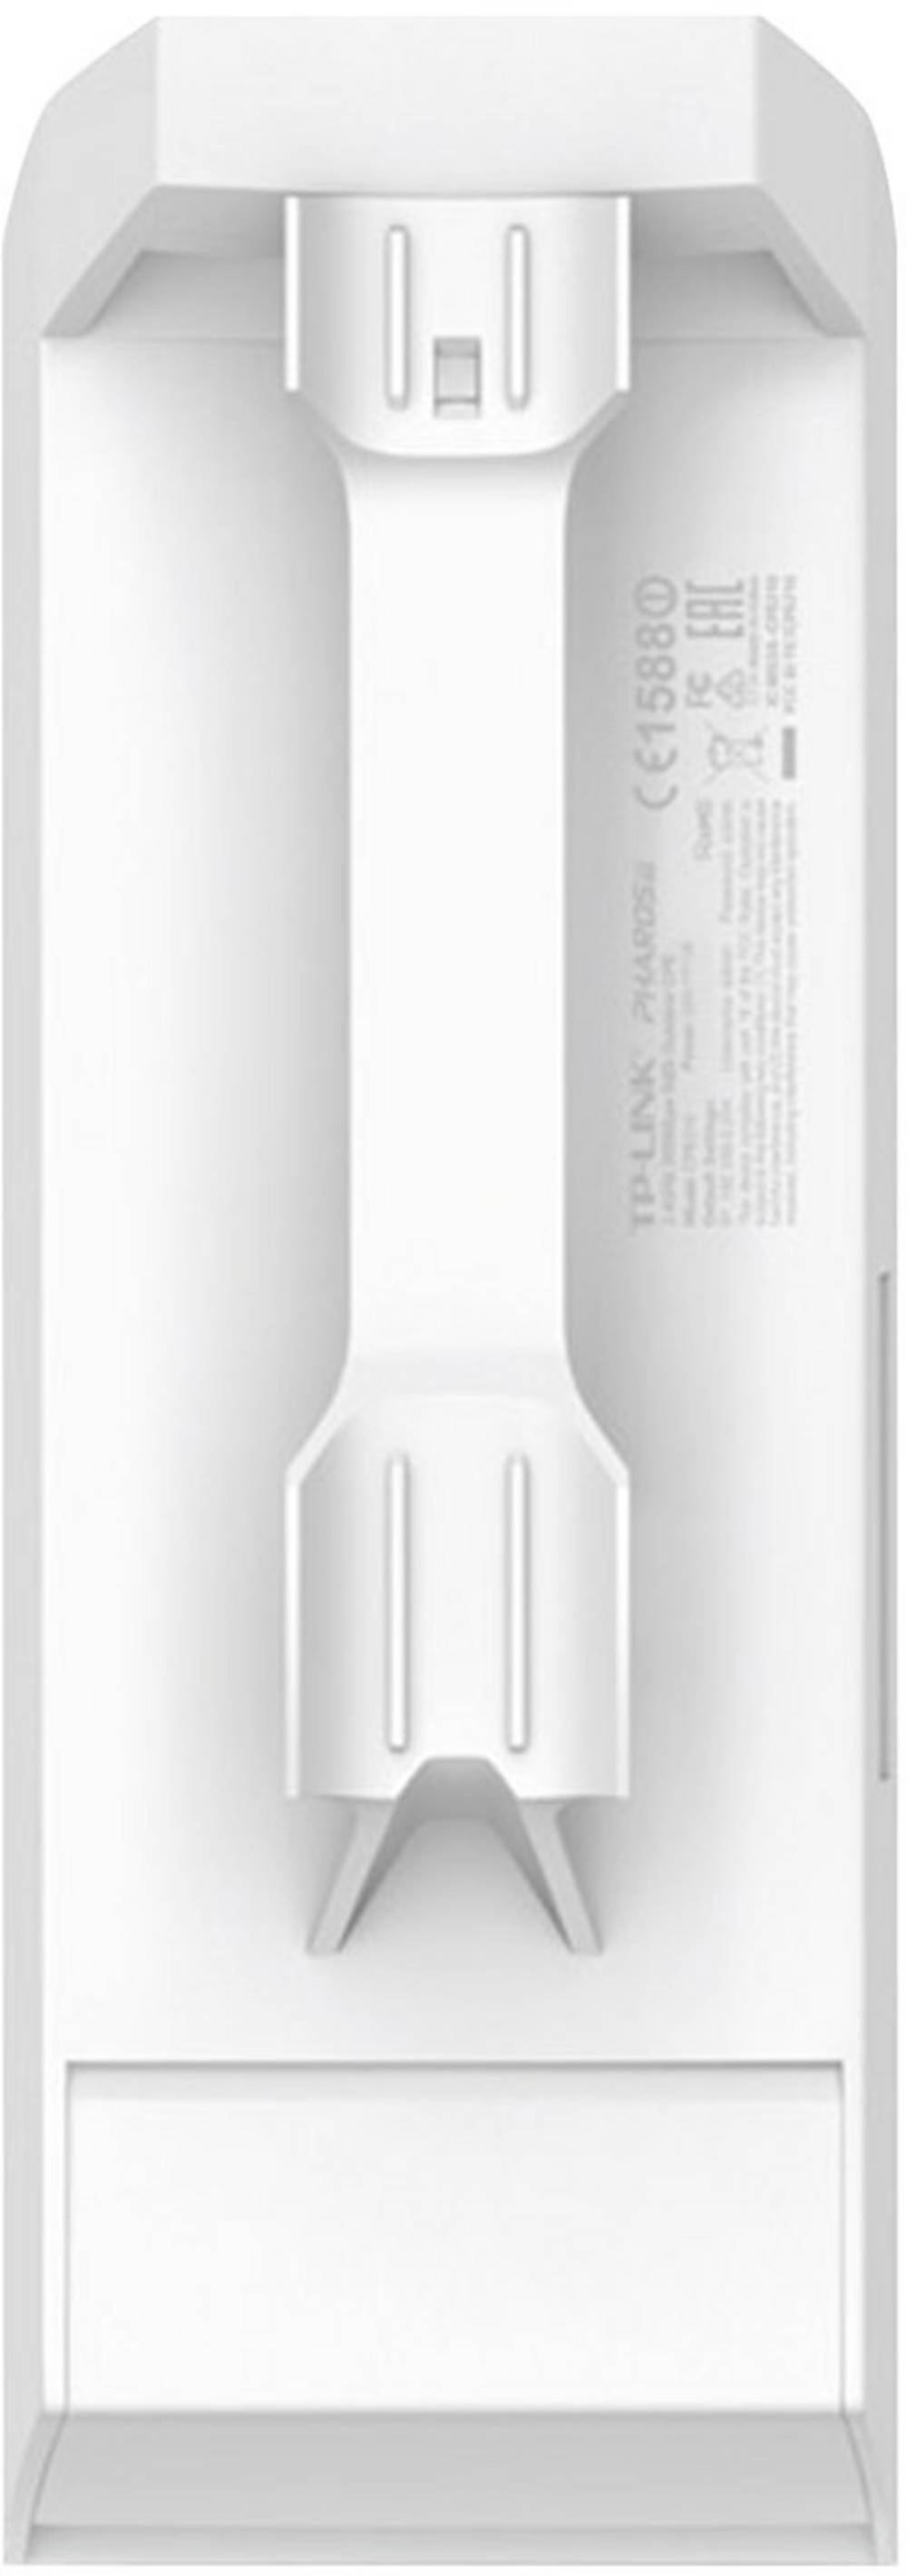 Tp Link Cpe210 Cpe210 Poe Wifi Outdoor Access Point 300 Mbps 2 4 Ghz